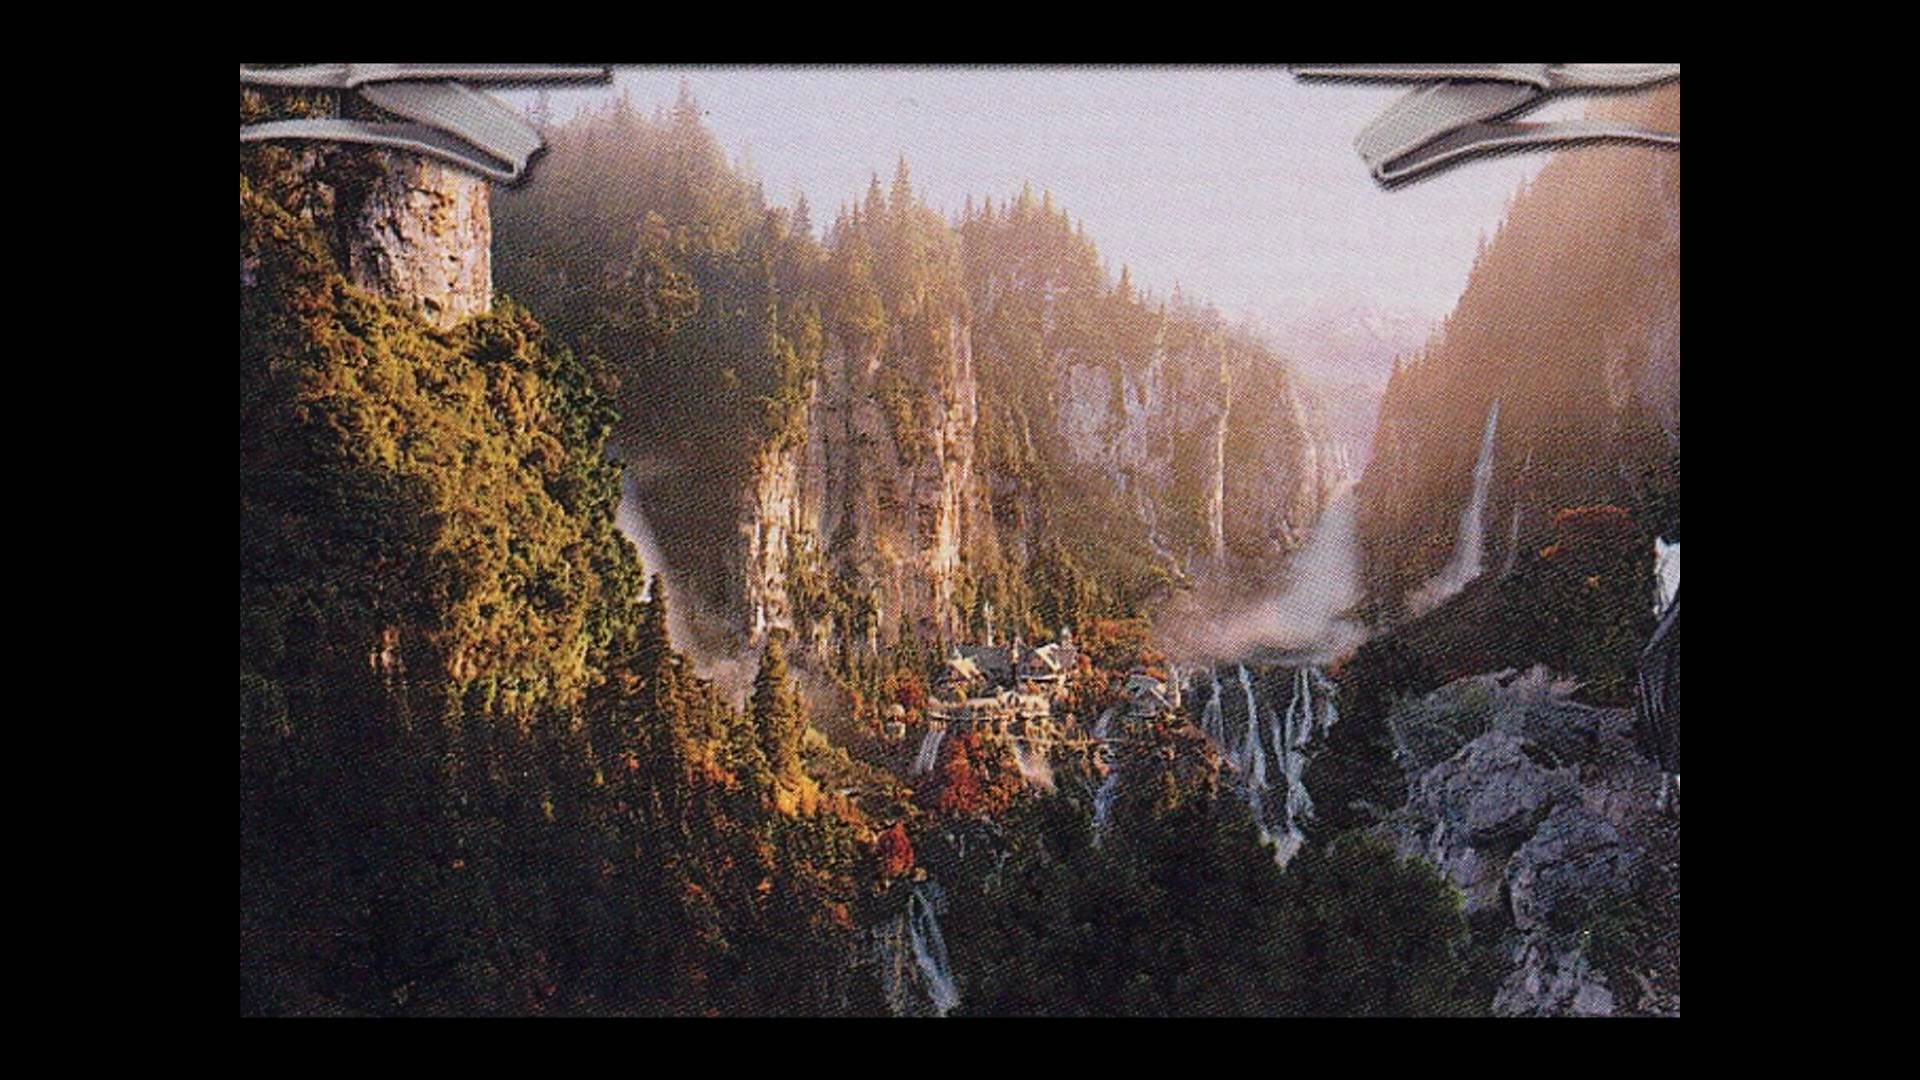 rivendell wallpaper - photo #26